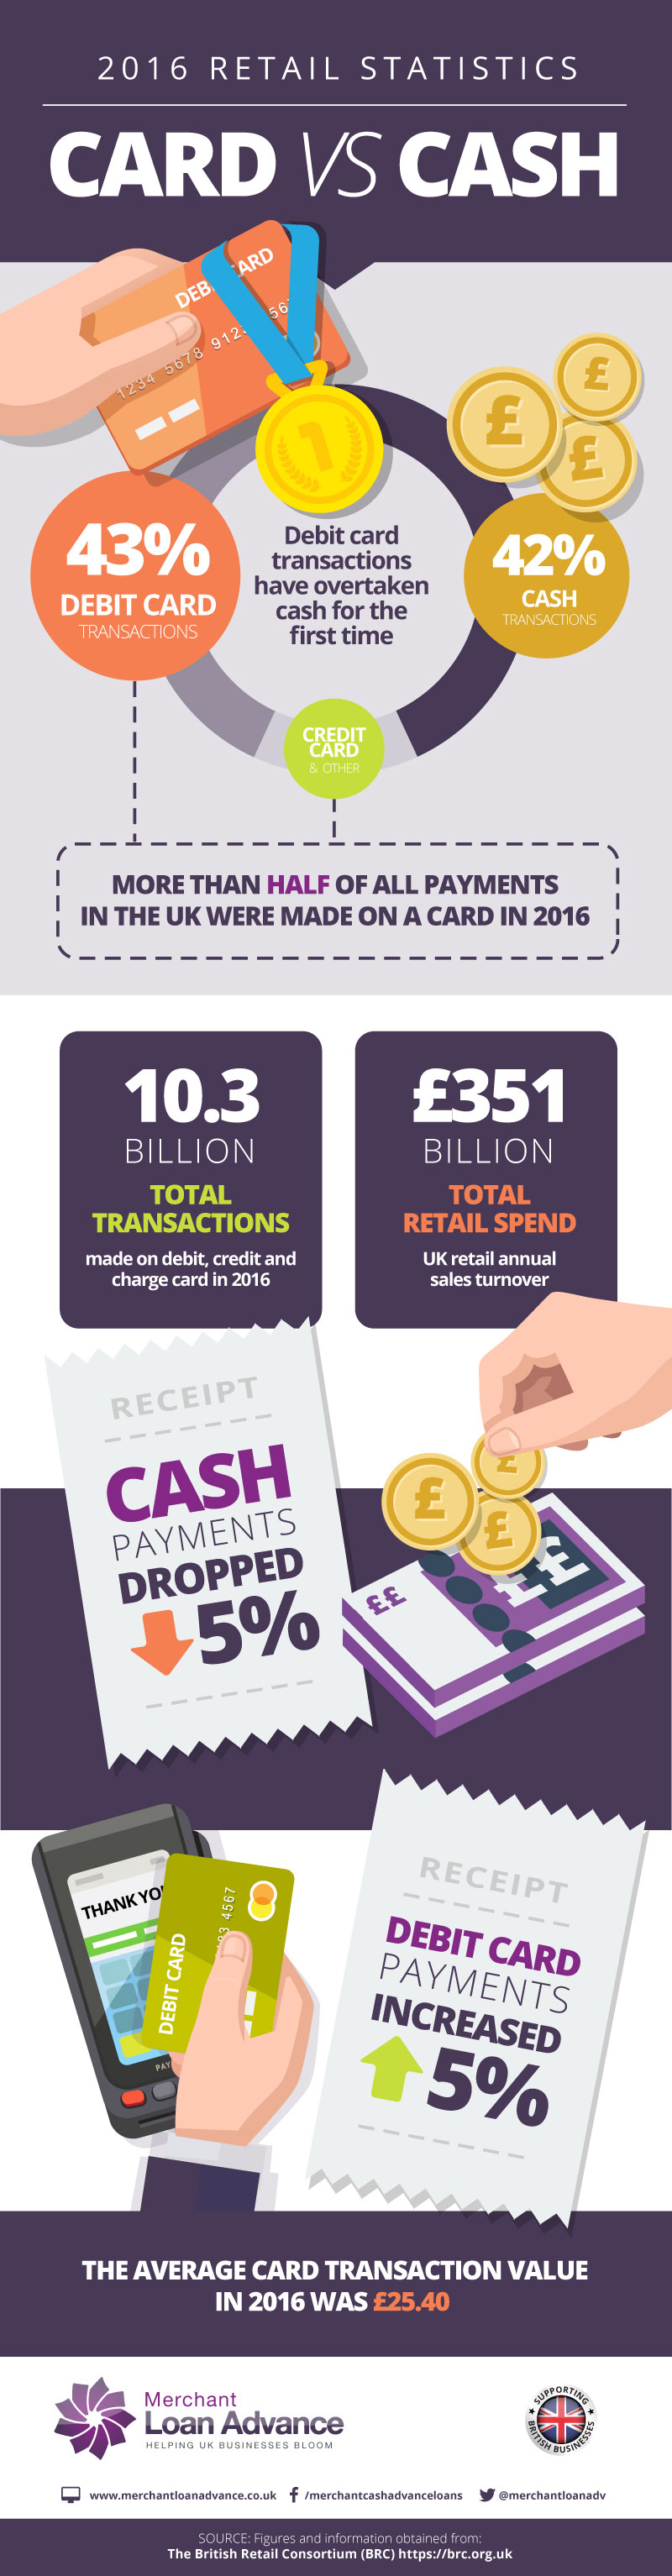 2016 retail card statistics - Card overtakes cash for the first time